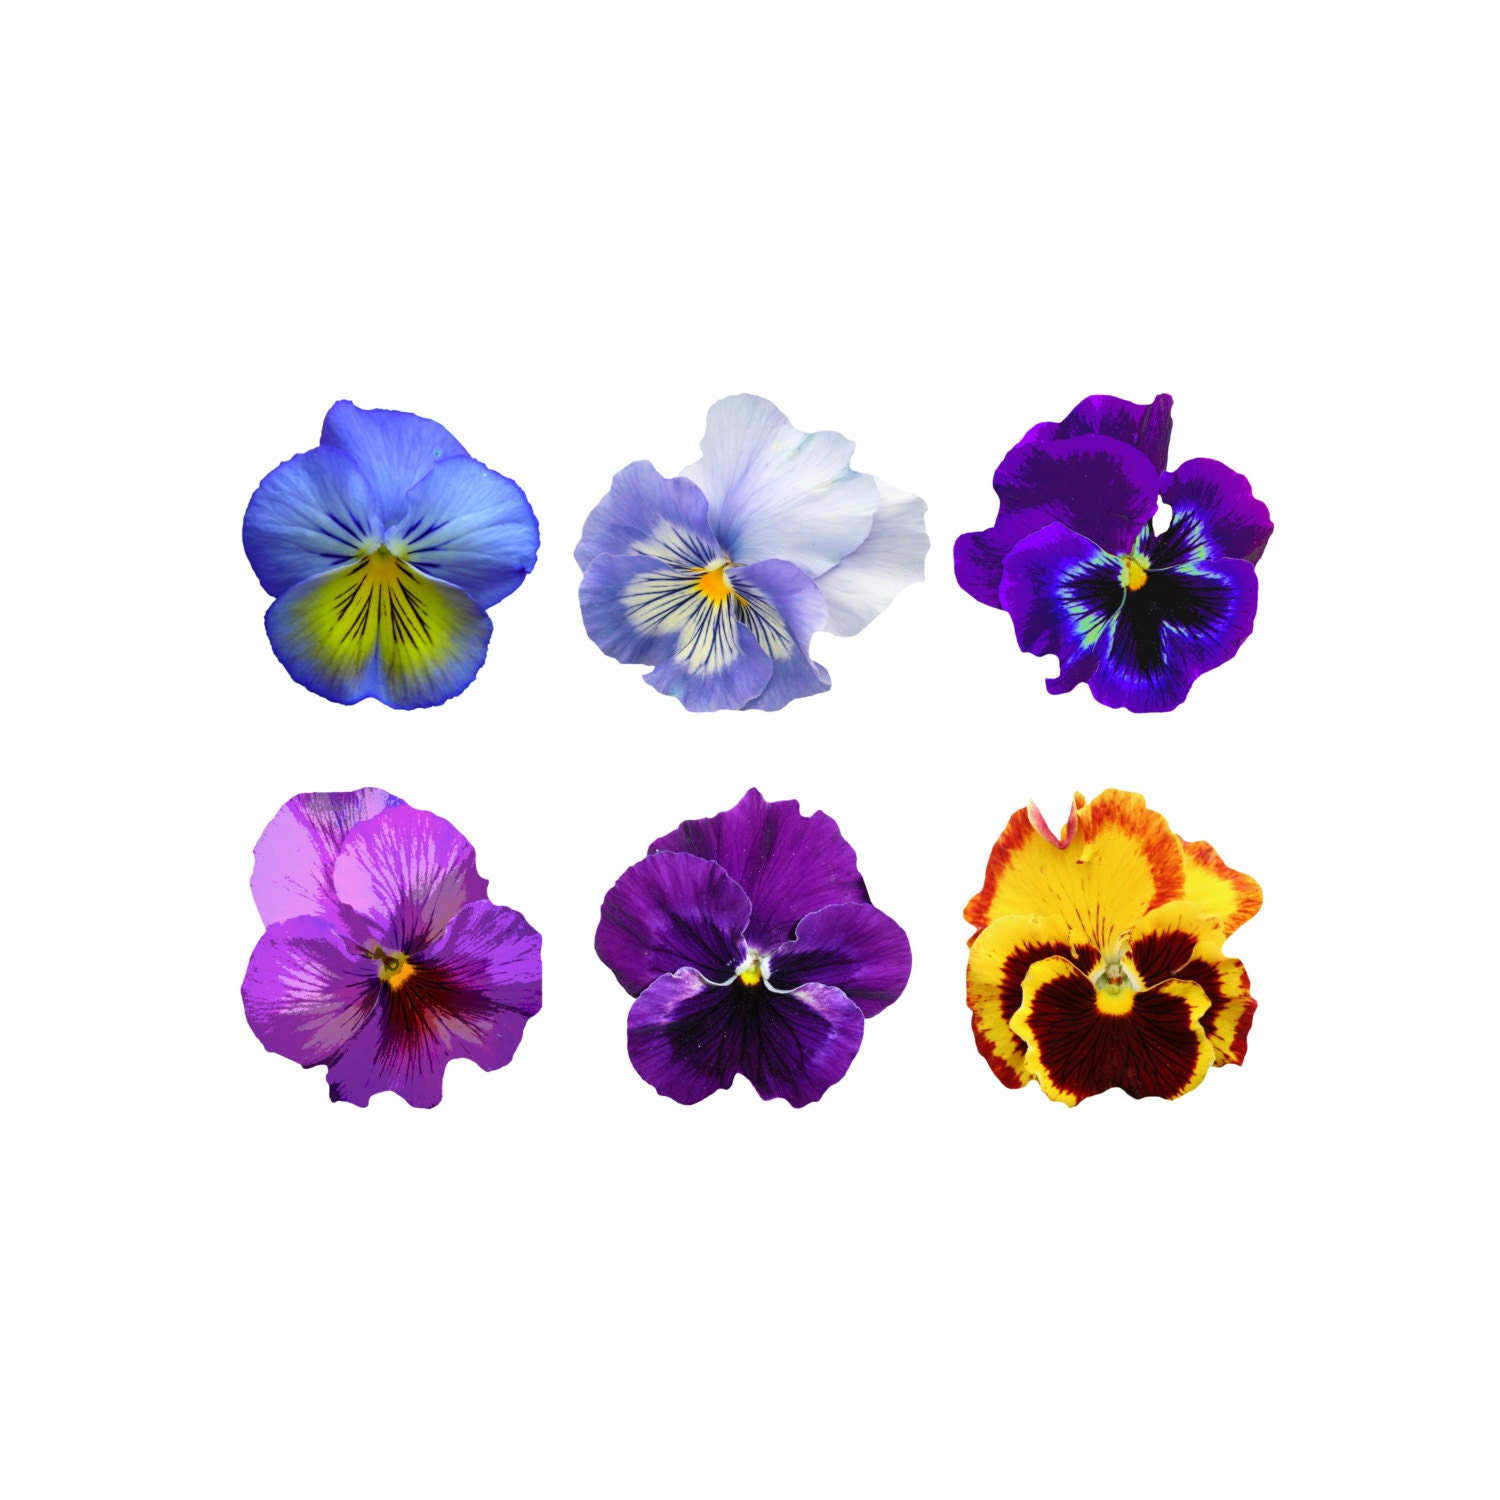 pansy clip art pansy clipart clip art pansy clipart pansy rh etsy com Pansy Flower pansy flower free clipart